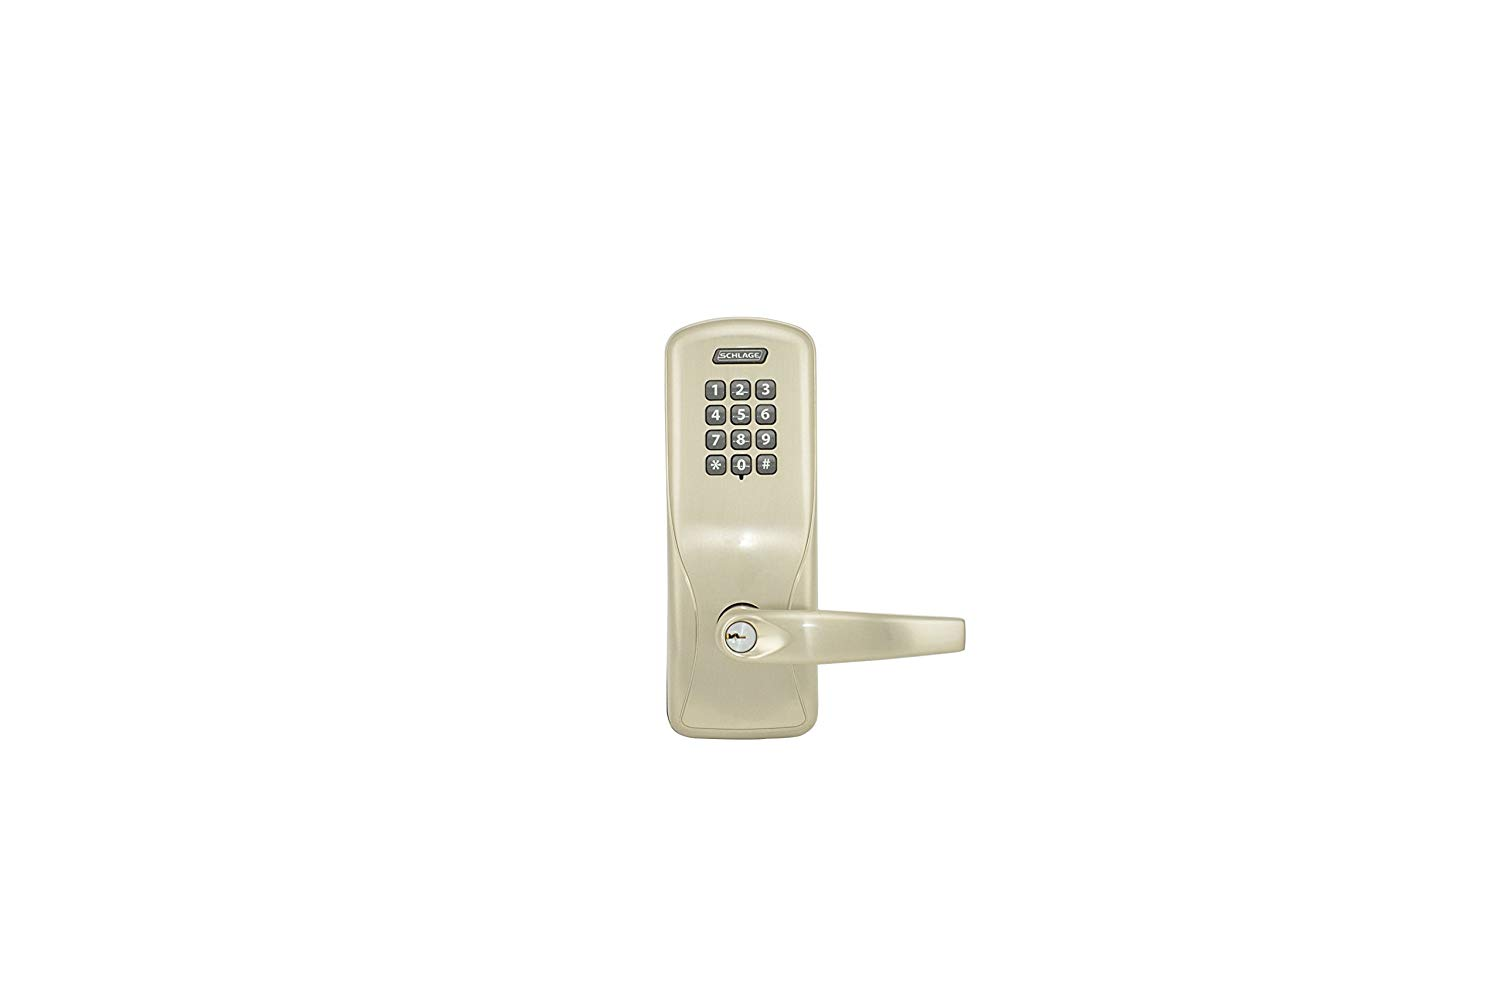 Schlage CO100 CY70KP ATH 626JD Electronics Security Lock Athens for 13049 10025 Less Schlage FSIC Cylinder